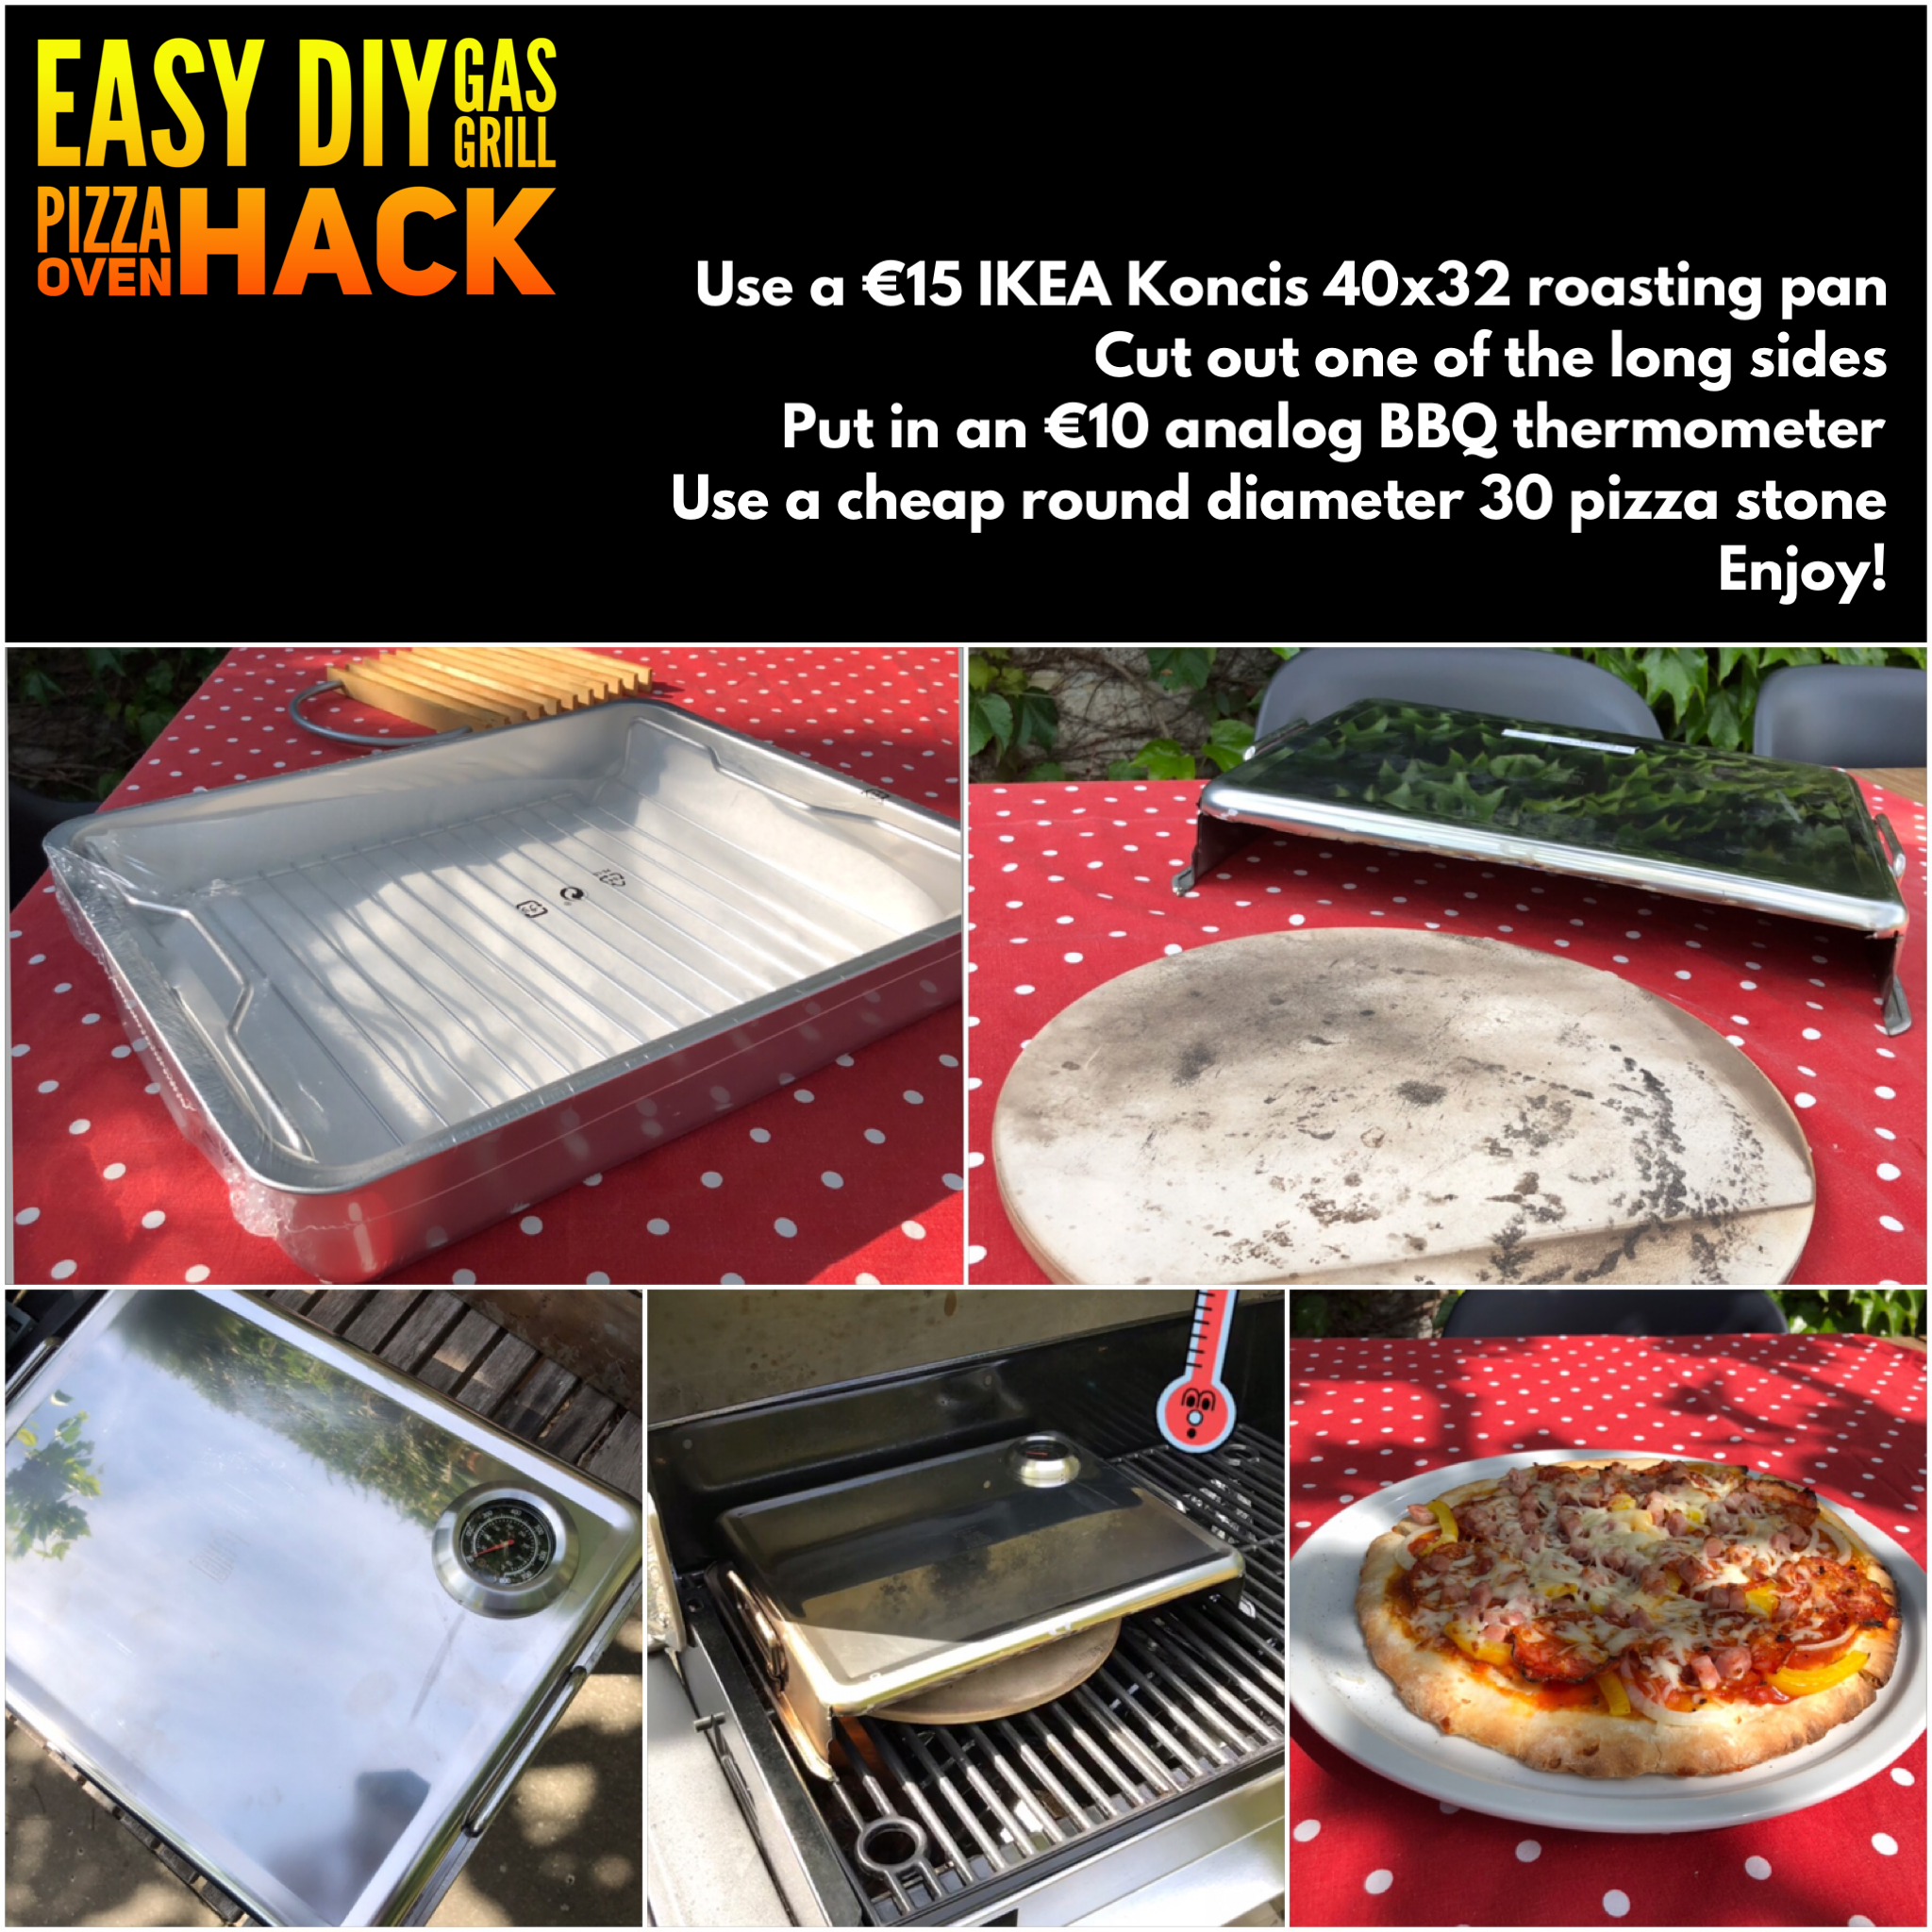 DIY gas grill pizza oven hack BBQ